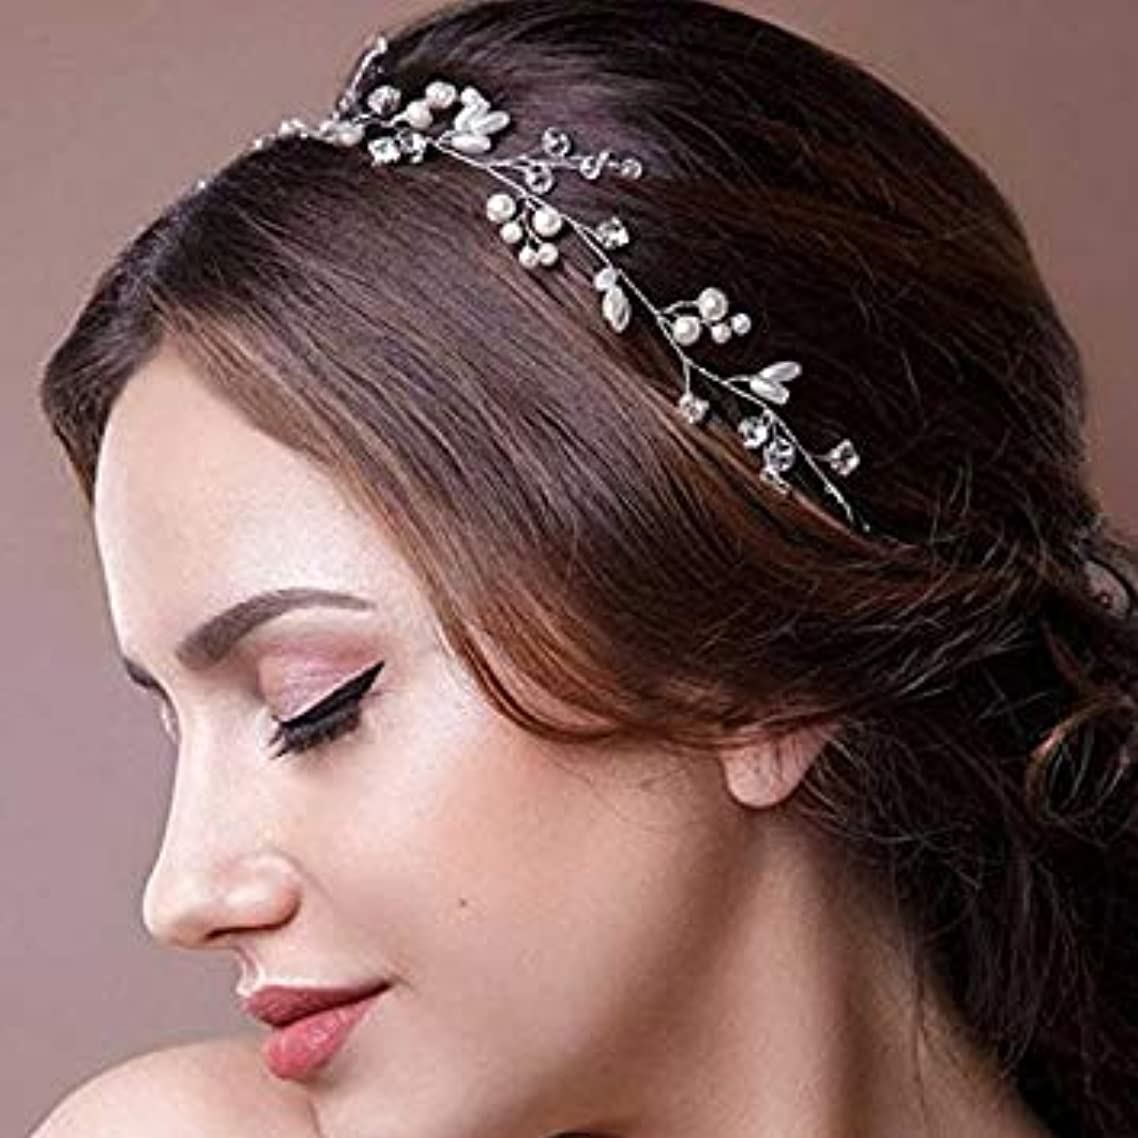 Catery Bride Wedding Headband Silver Crystal Bead Hair Vine Pearl Accessories for Women and Girls